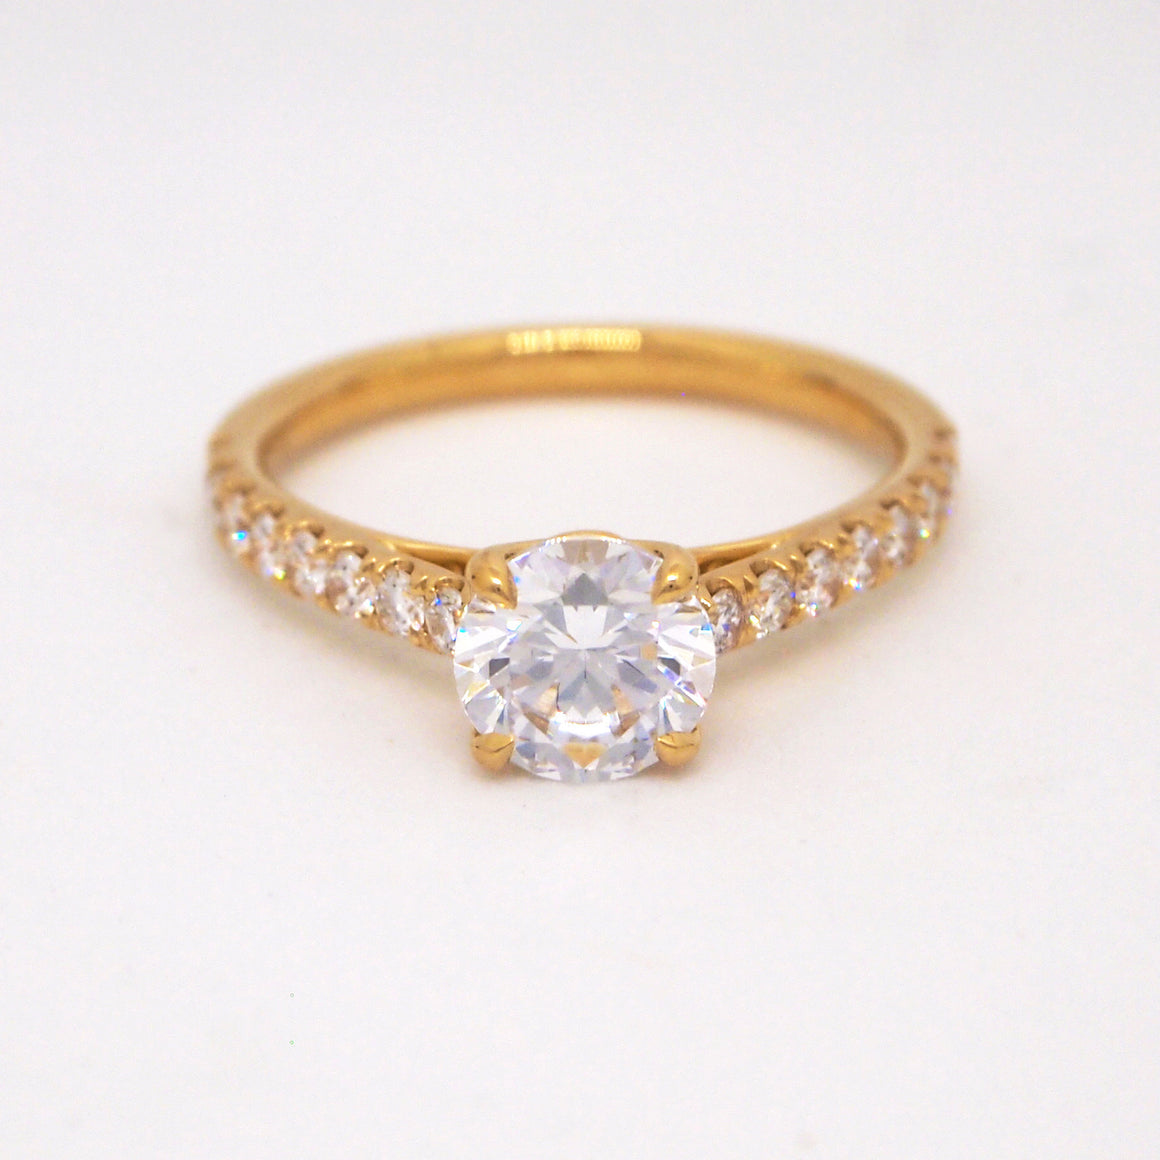 Point of Love 18K yellow gold engagement ring with 0.40cts of brillliant cut diamonds and one ruby weighing 0.12cts